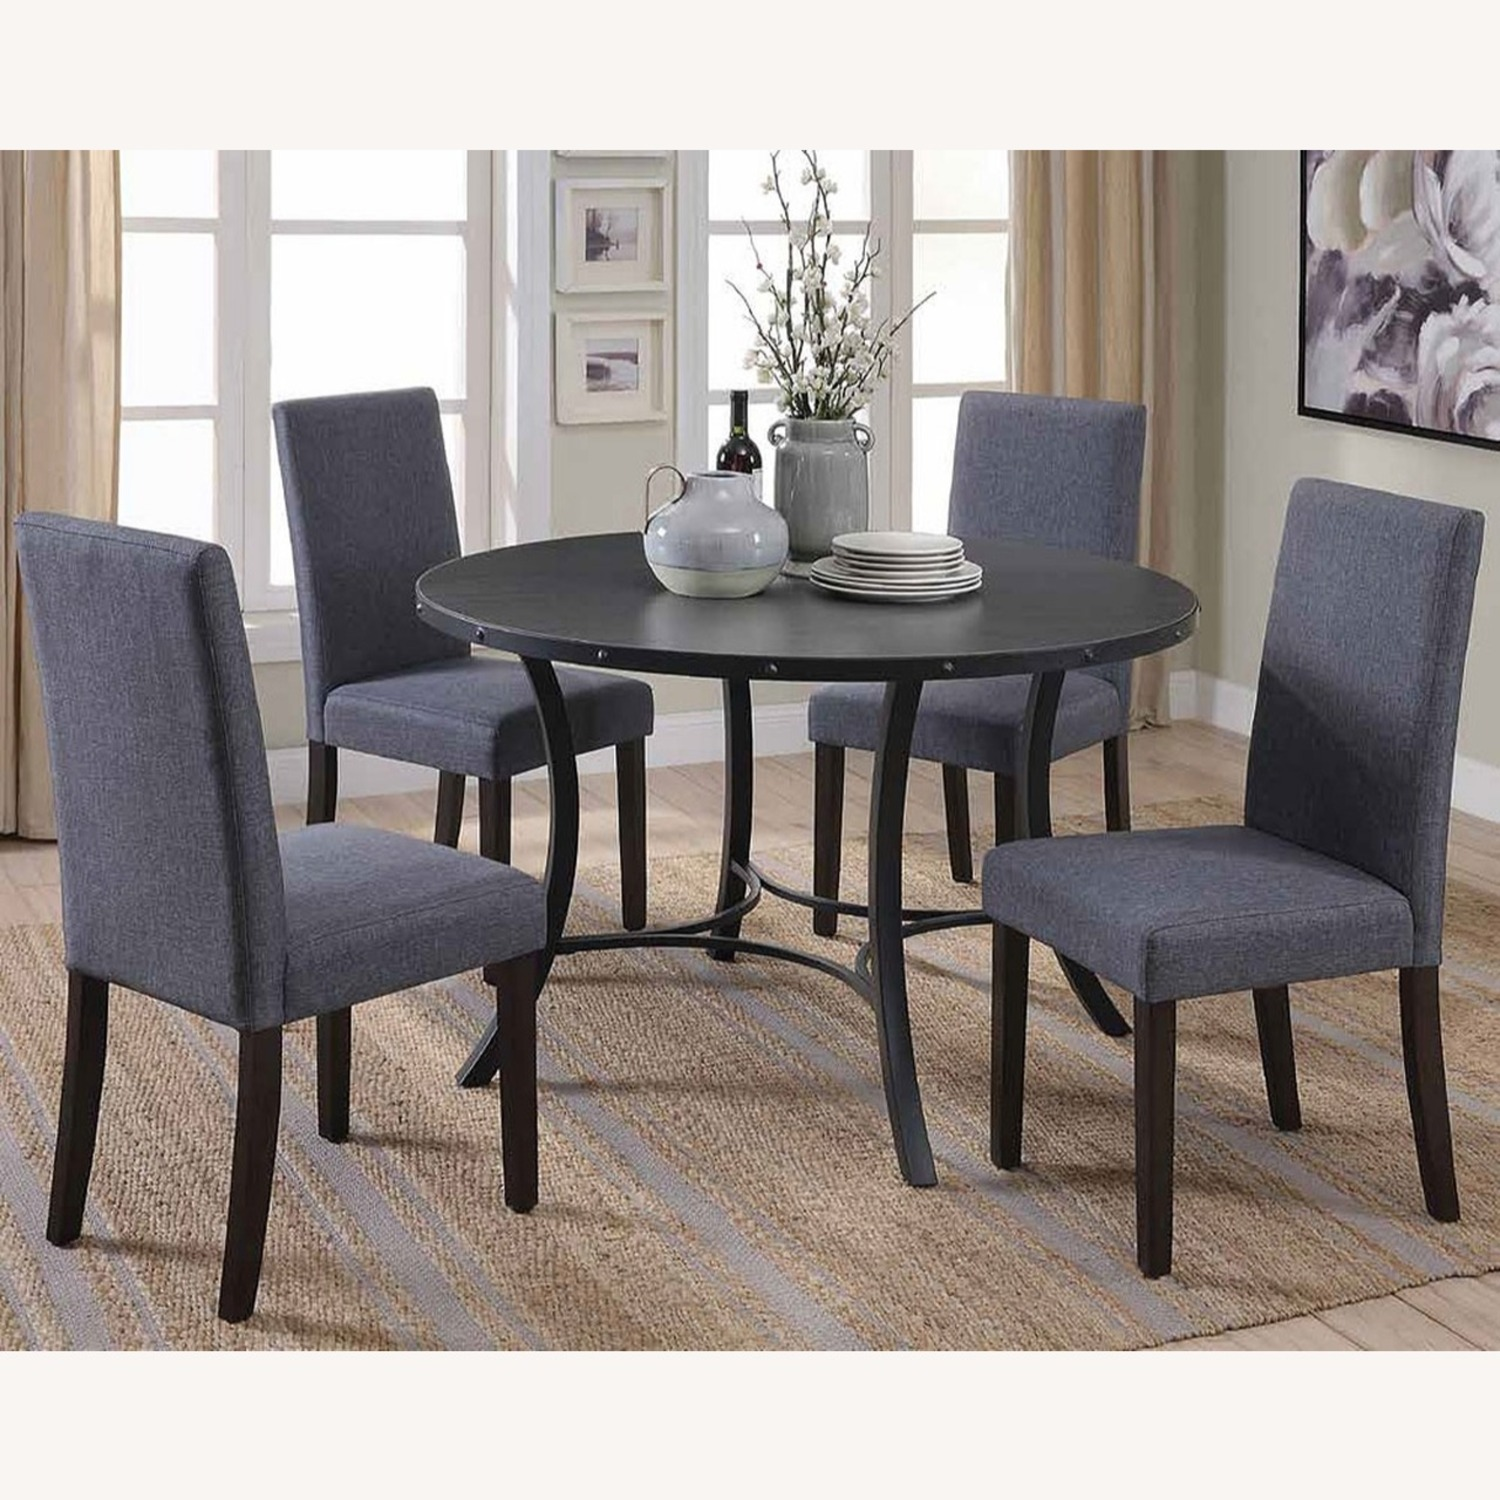 Rustic 5 Piece Dining Set In Matte Black Finish - image-4